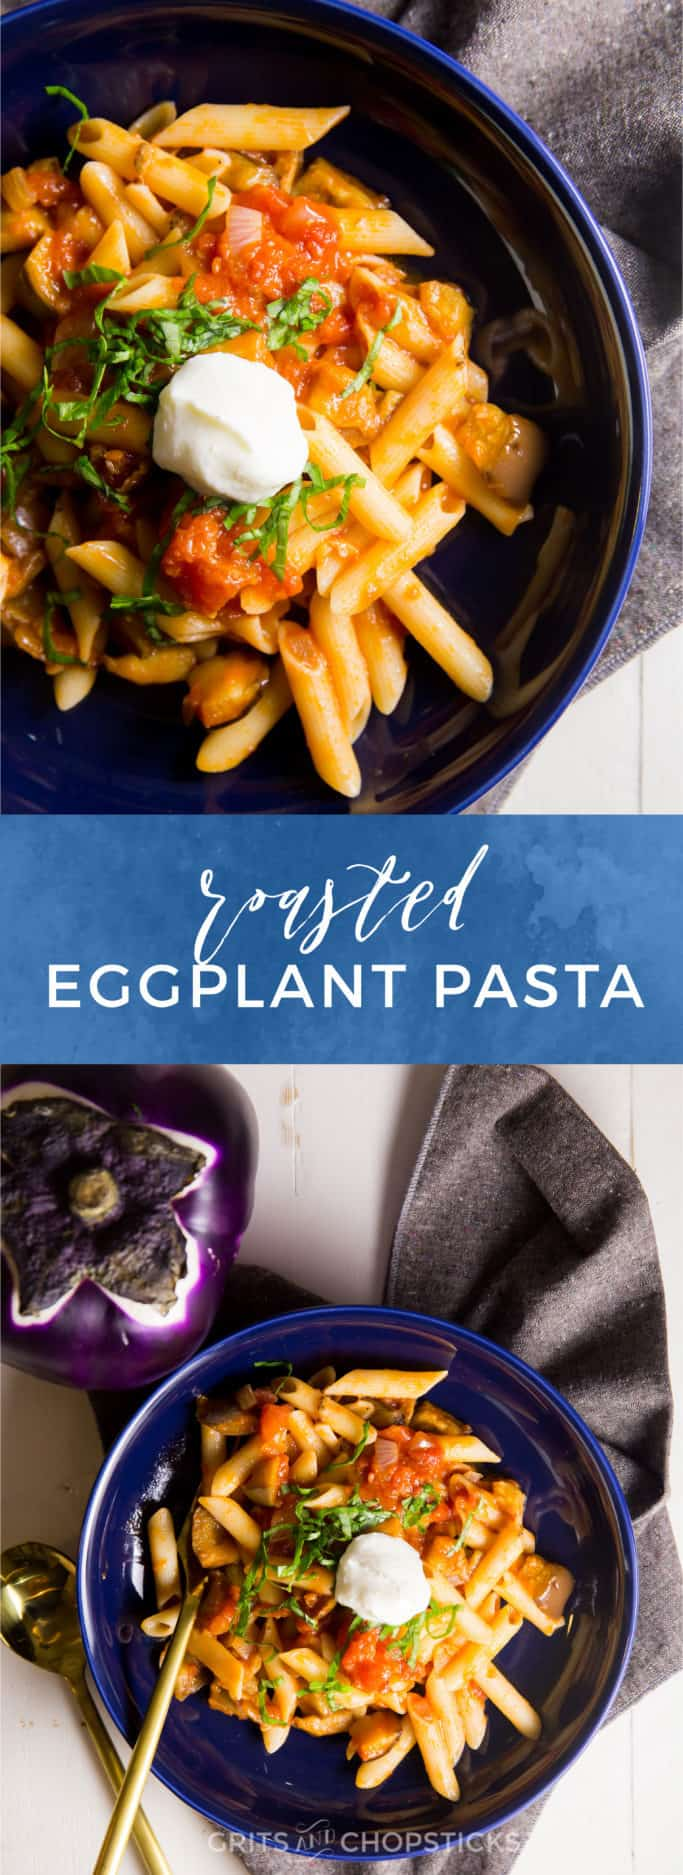 gluten free roasted eggplant pasta makes a light and quick weeknight meal